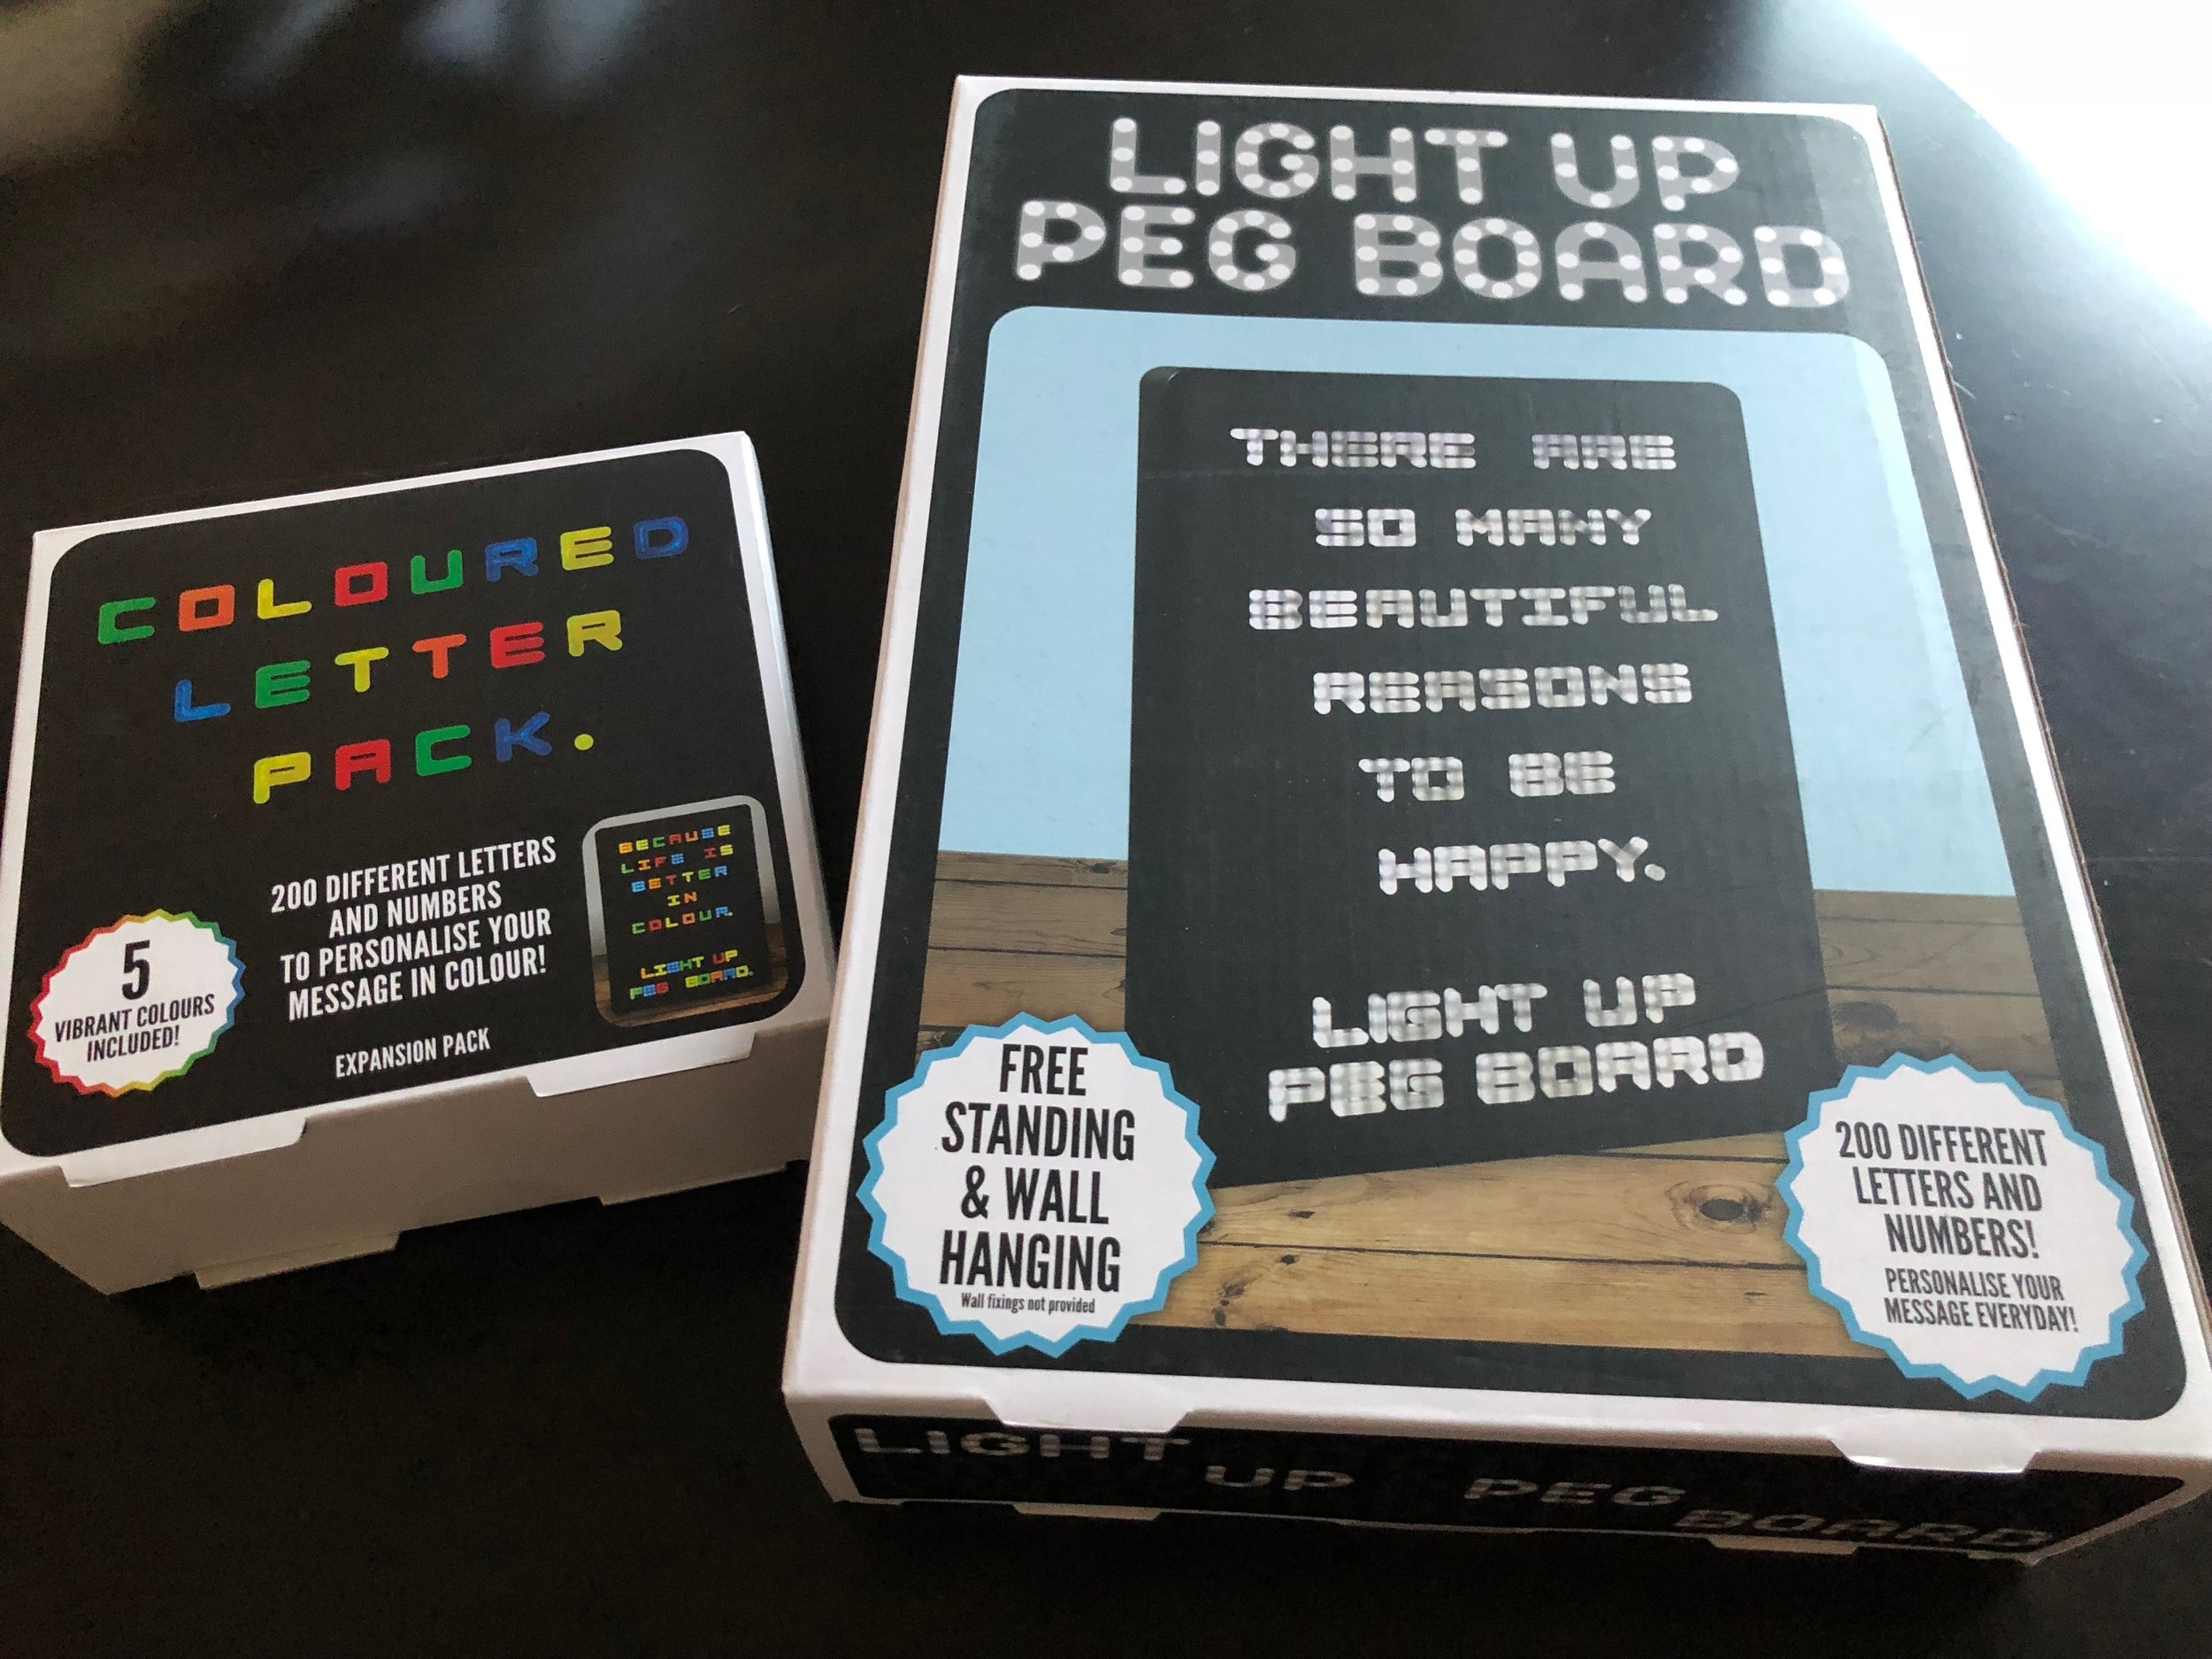 It's a modern day Lite Brite! Instead of having to plug it in, it's battery operated and can be hung on the wall. Classy!